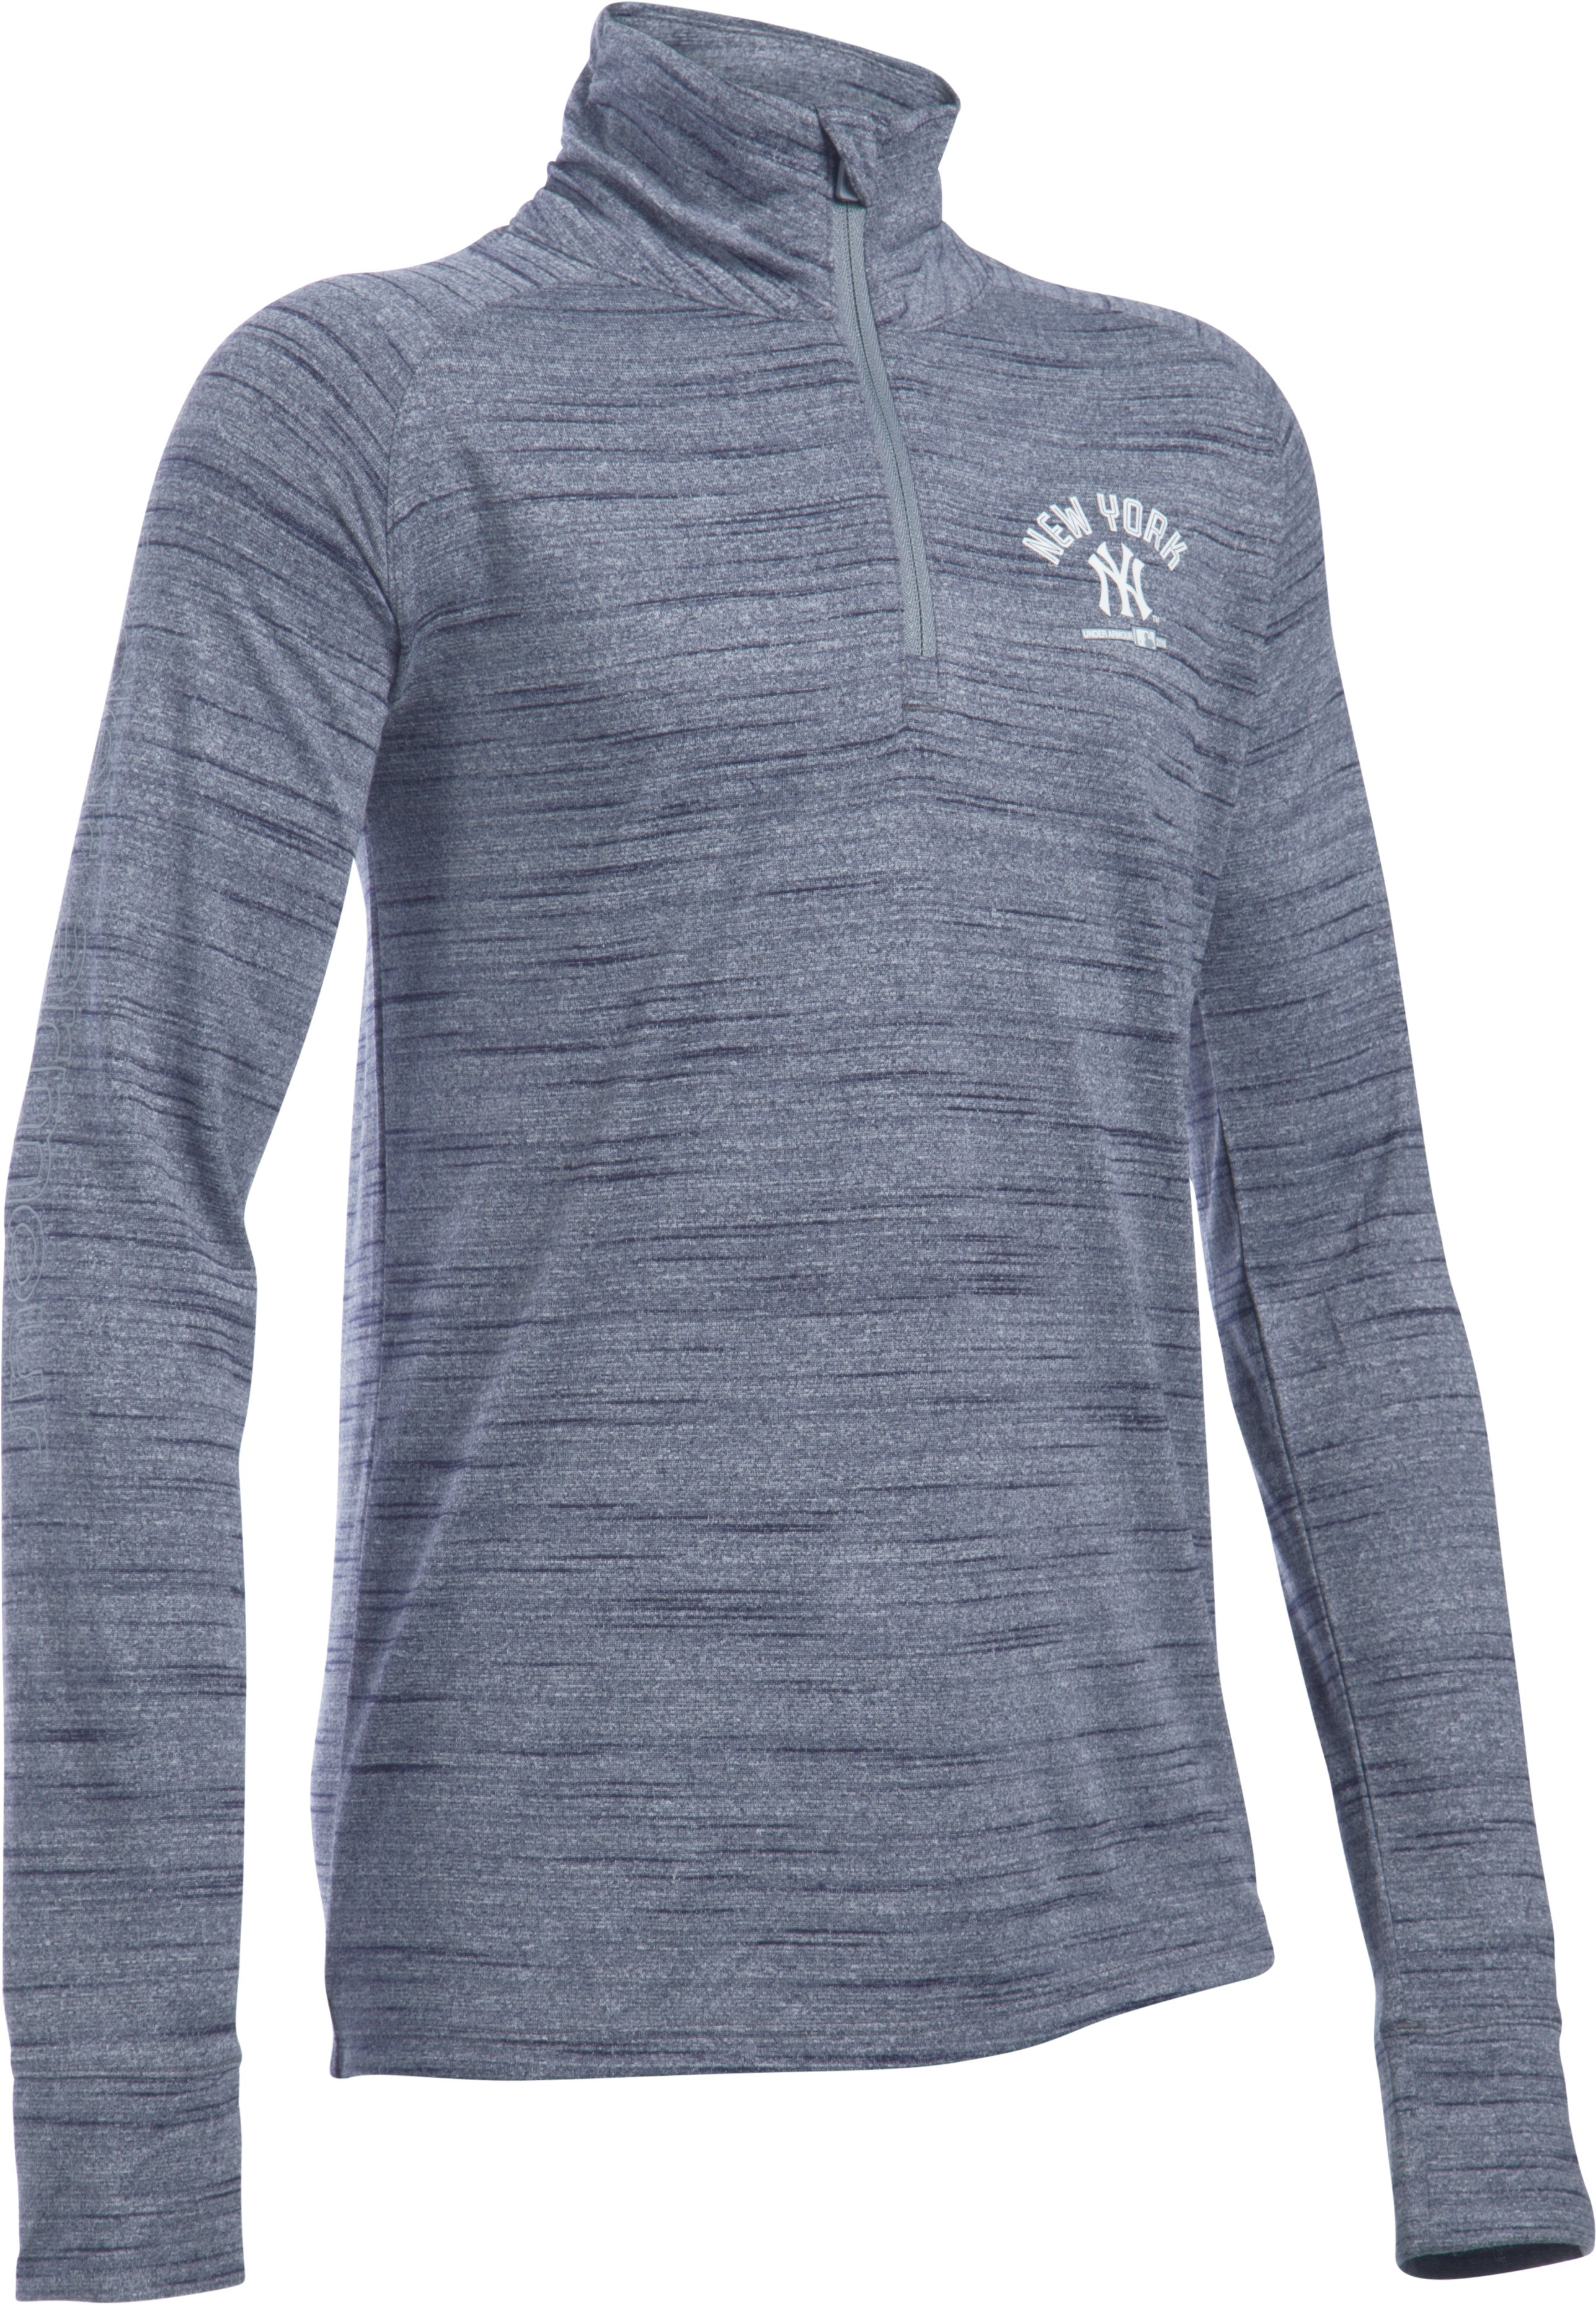 Girls' New York Yankees UA Tech™ 1/2 Zip, Midnight Navy, zoomed image